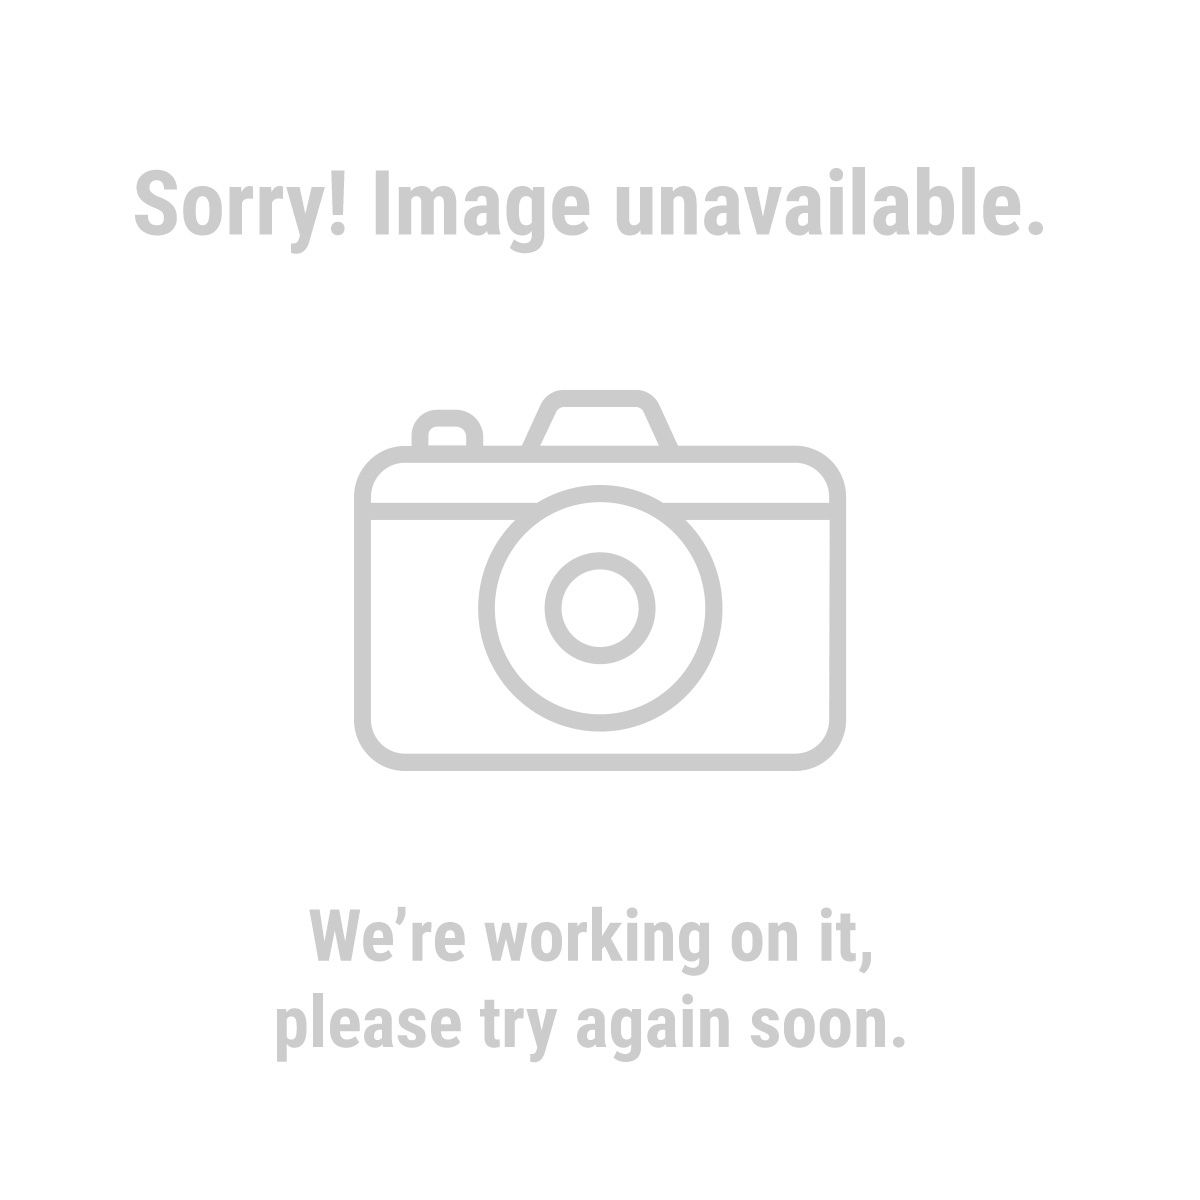 Cen-Tech 98614 CAN OBD II Code Reader/ EOBD Scanner